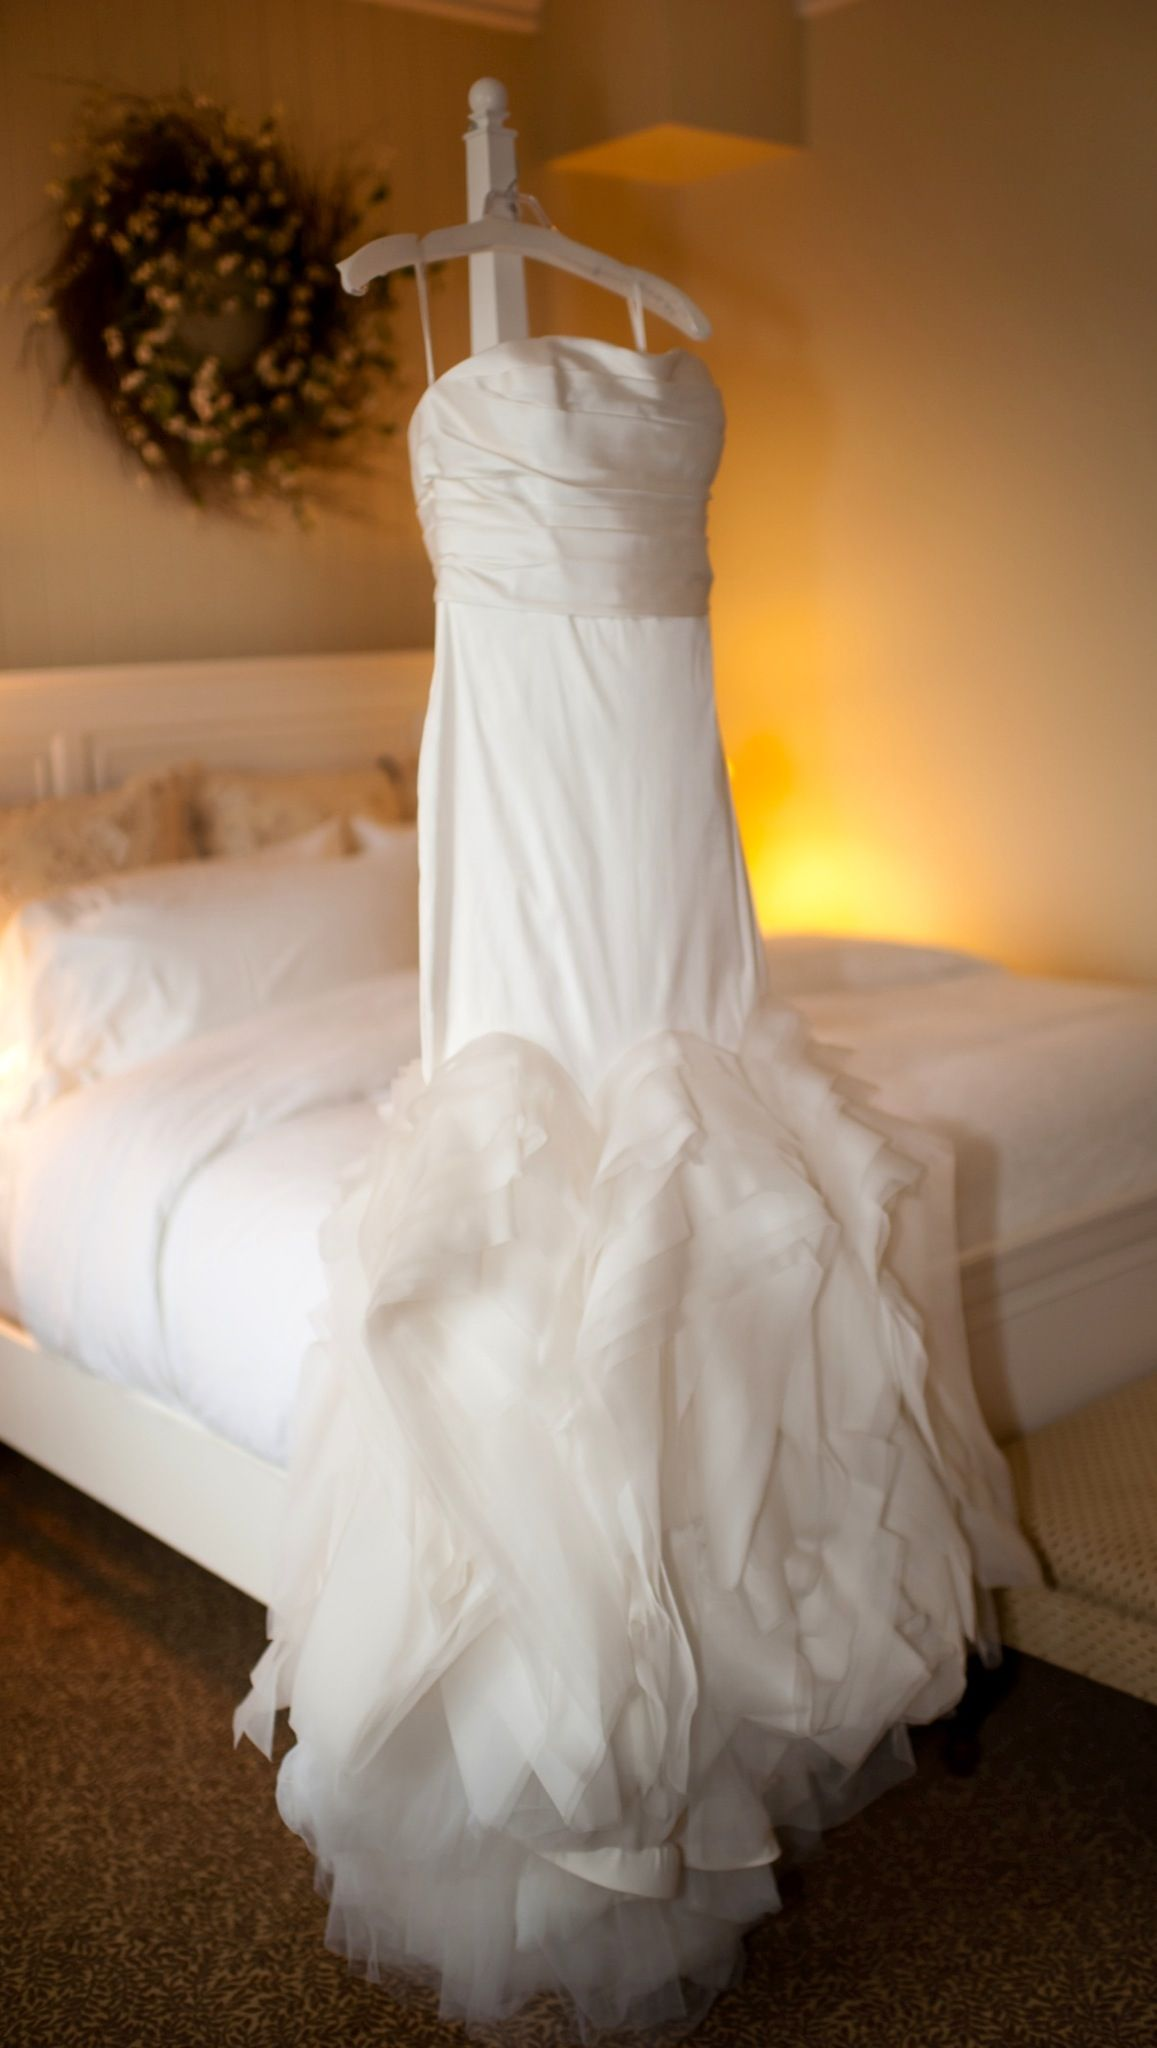 Vera Wang Ethel gown | White Wishes | Pinterest | Gowns and Wedding